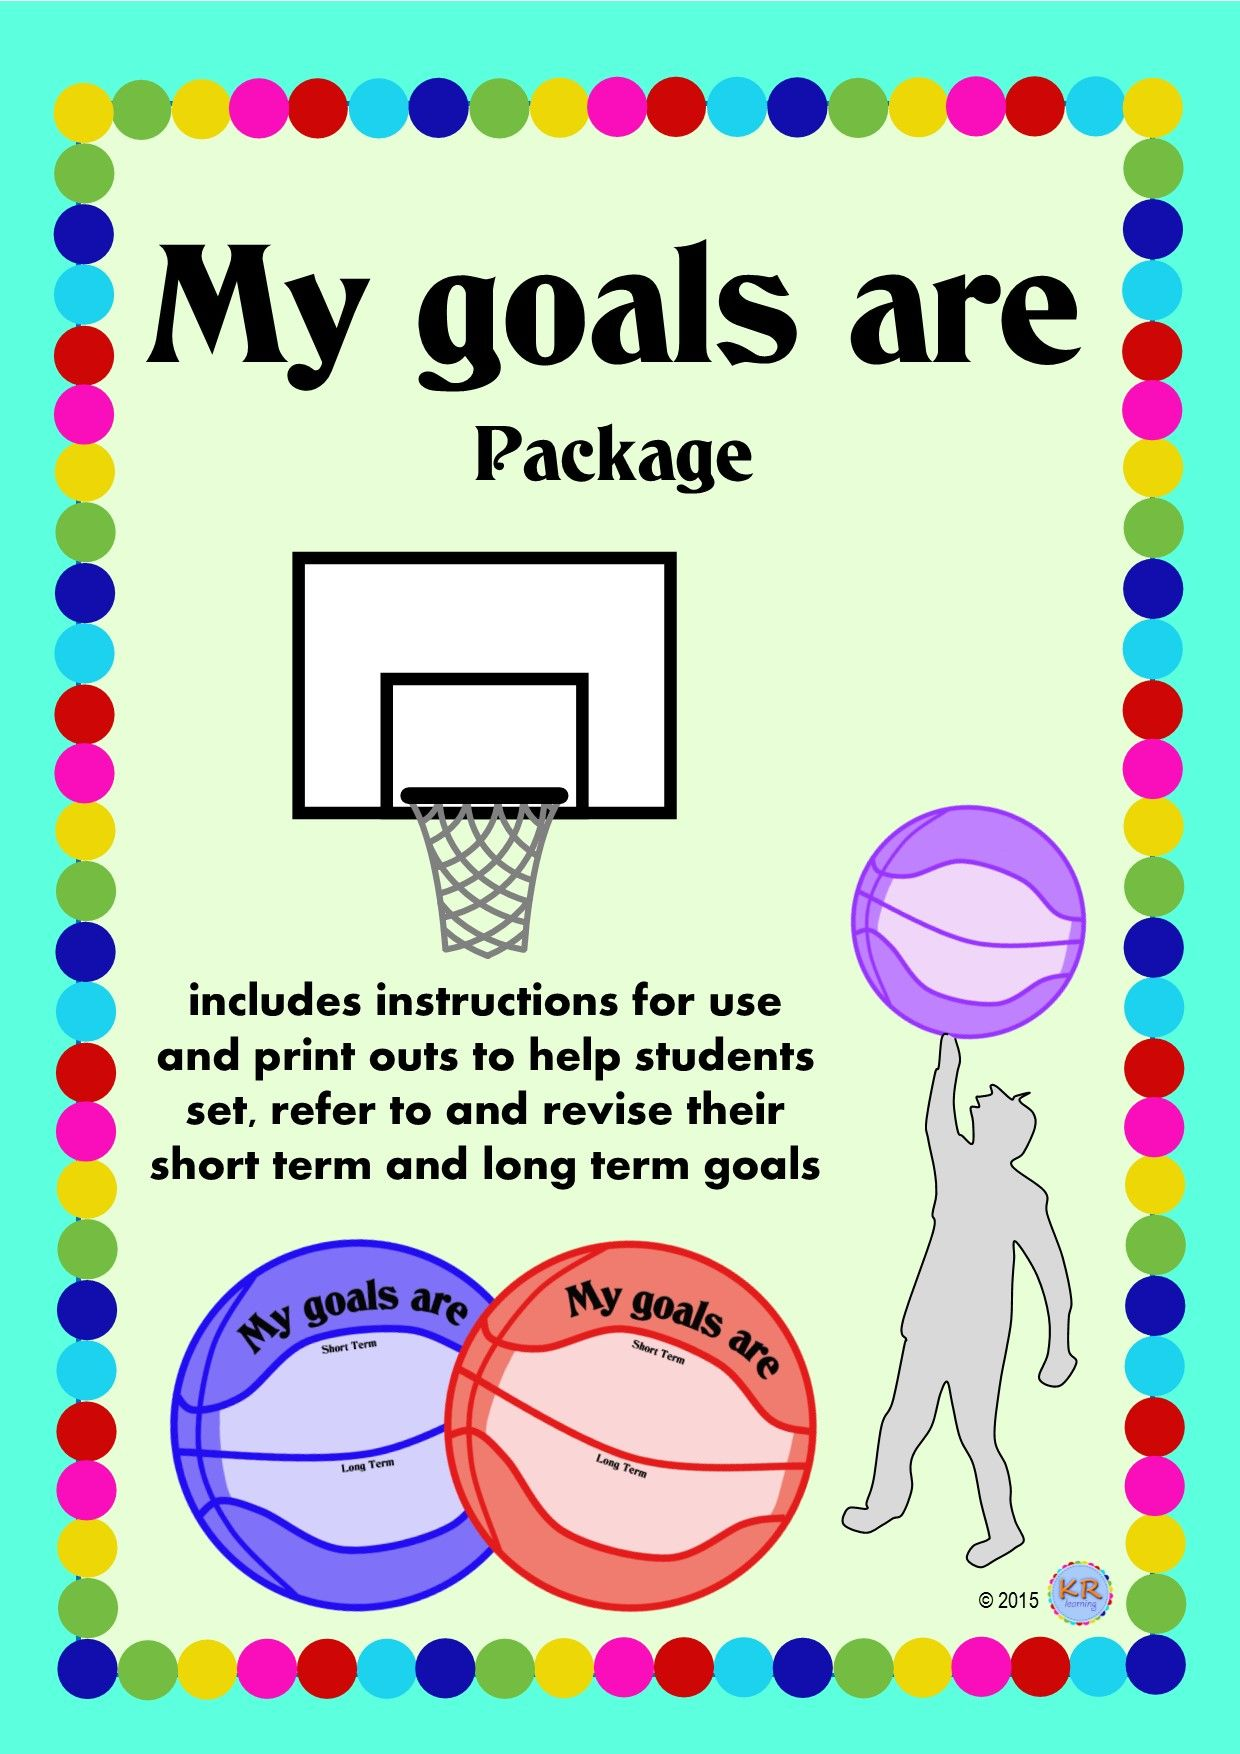 My Goals Are Goal Shooting Basketballs For Students To